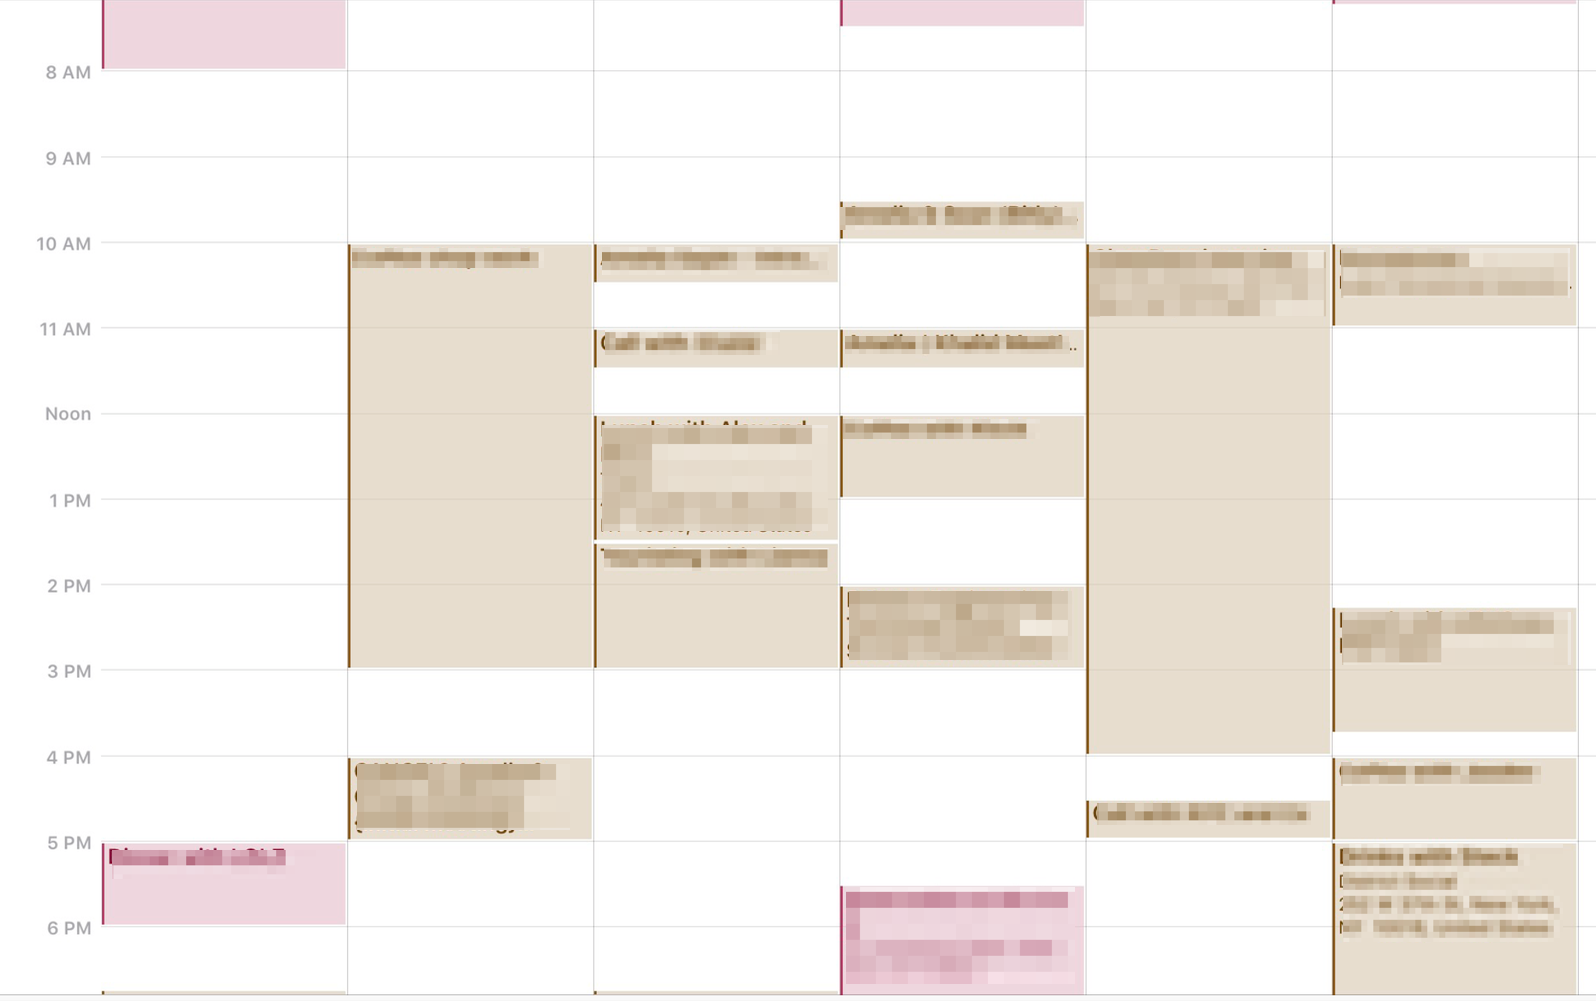 Trying to deal scheduling things when your calendar looks like this is hell.